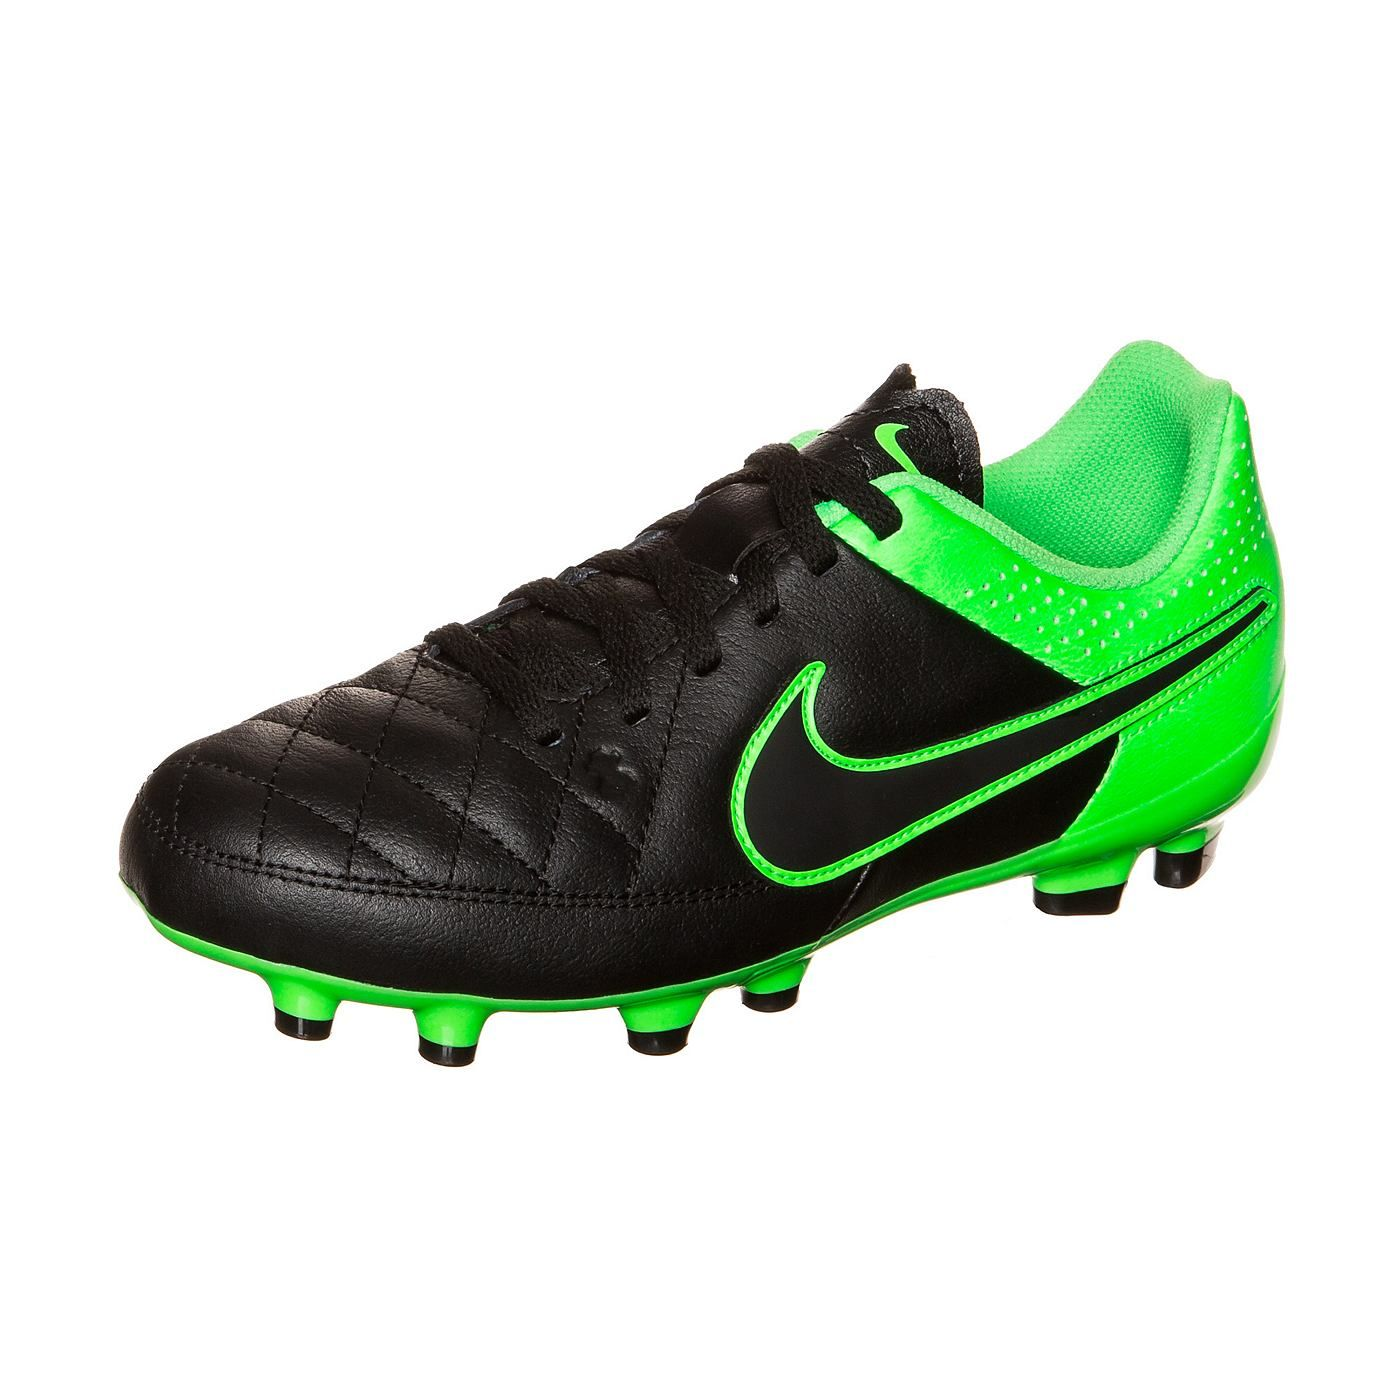 Genio Leather Fußballschuh HerrenMax Ii Fg Nike Tiempo fbyvY6g7